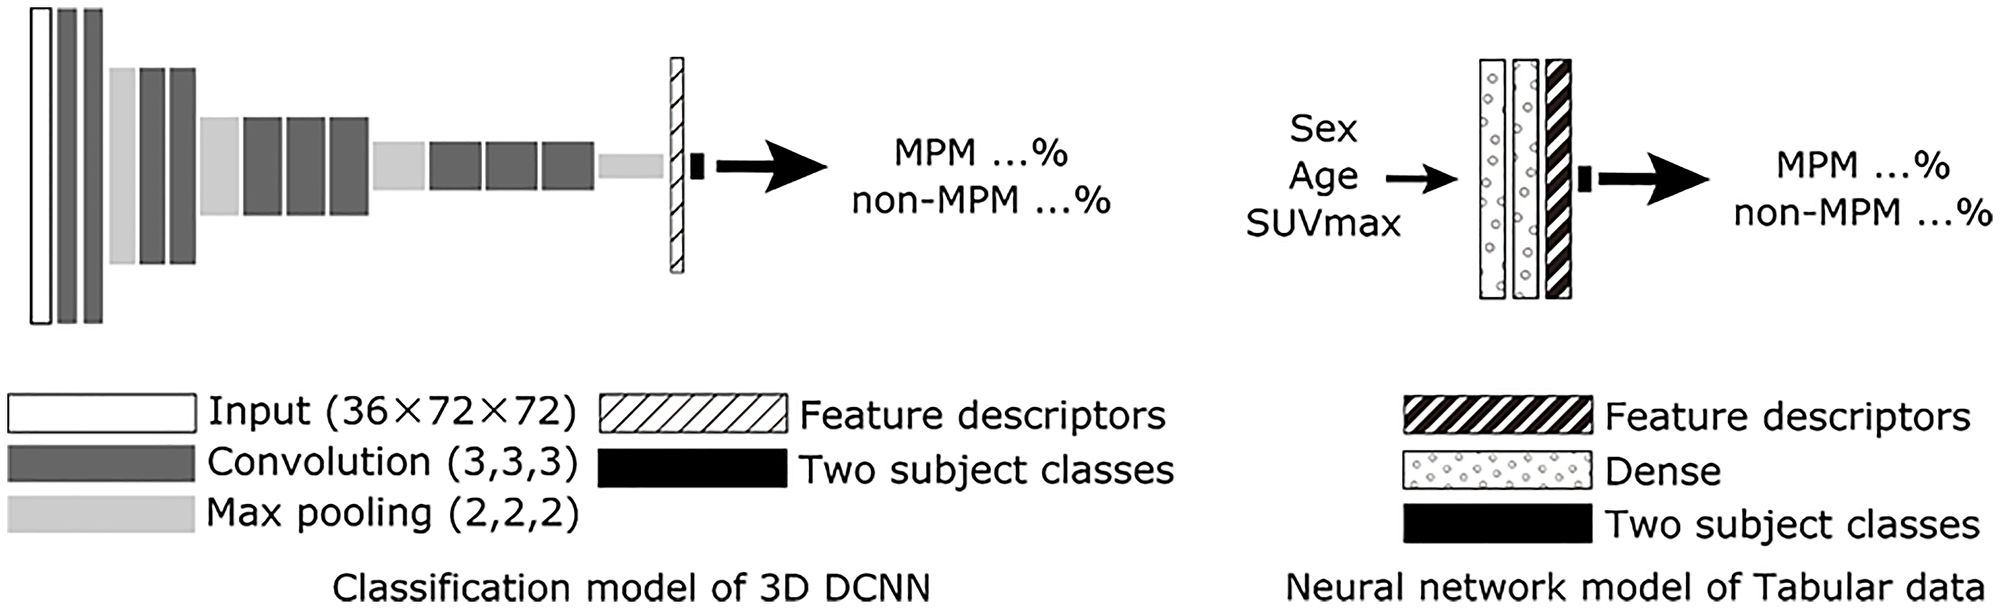 Scheme for proposed AI with PET/CT imaging alone (3D DCNN classification model, protocol A) and neural network model of table data.